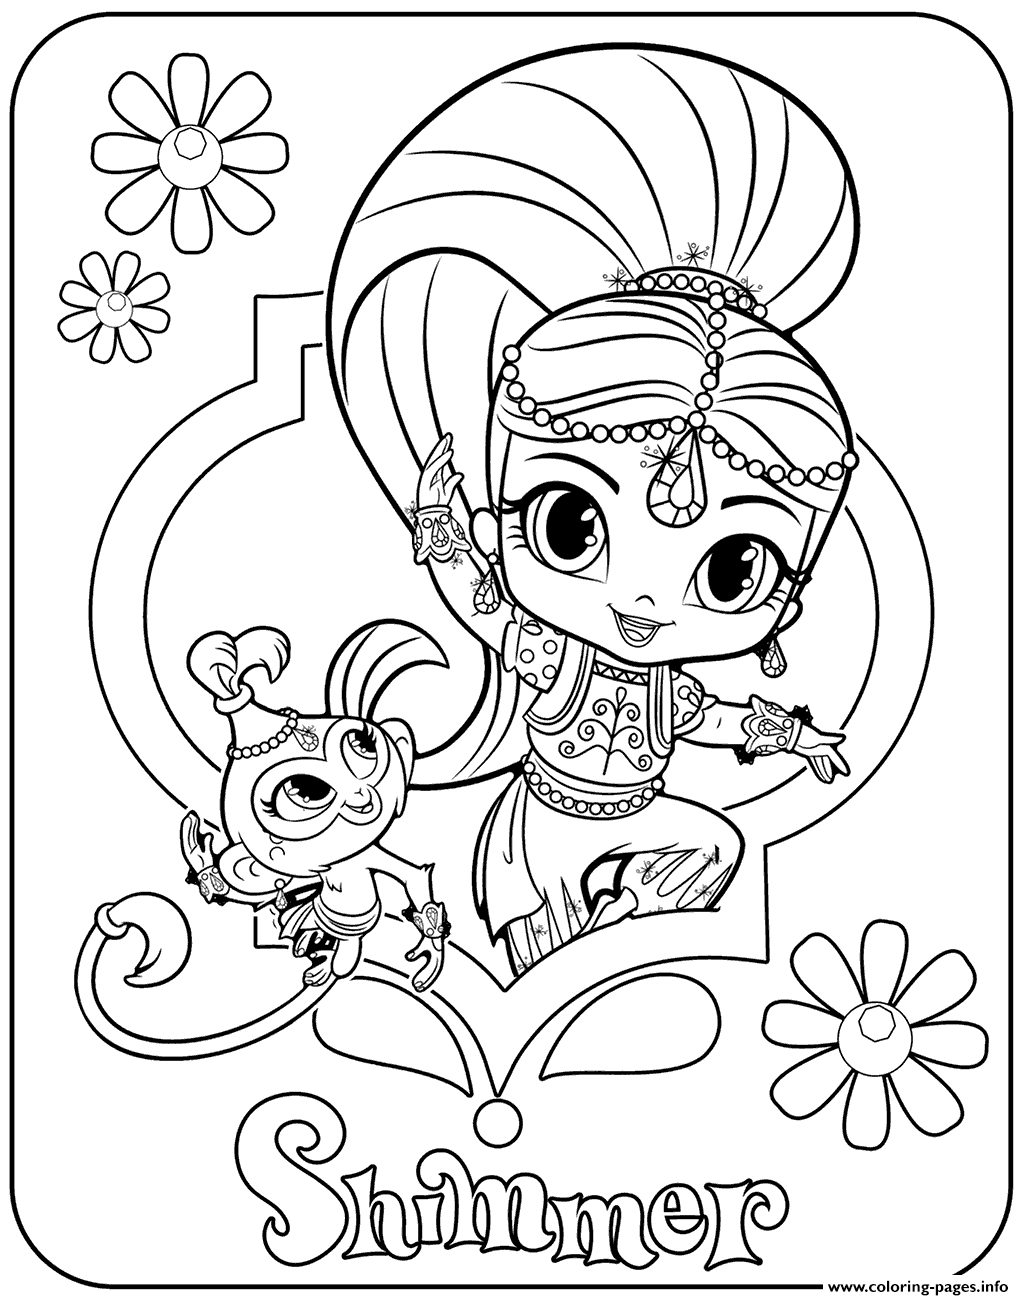 Shimmer and shine shimmer coloring pages printable Coloring book images